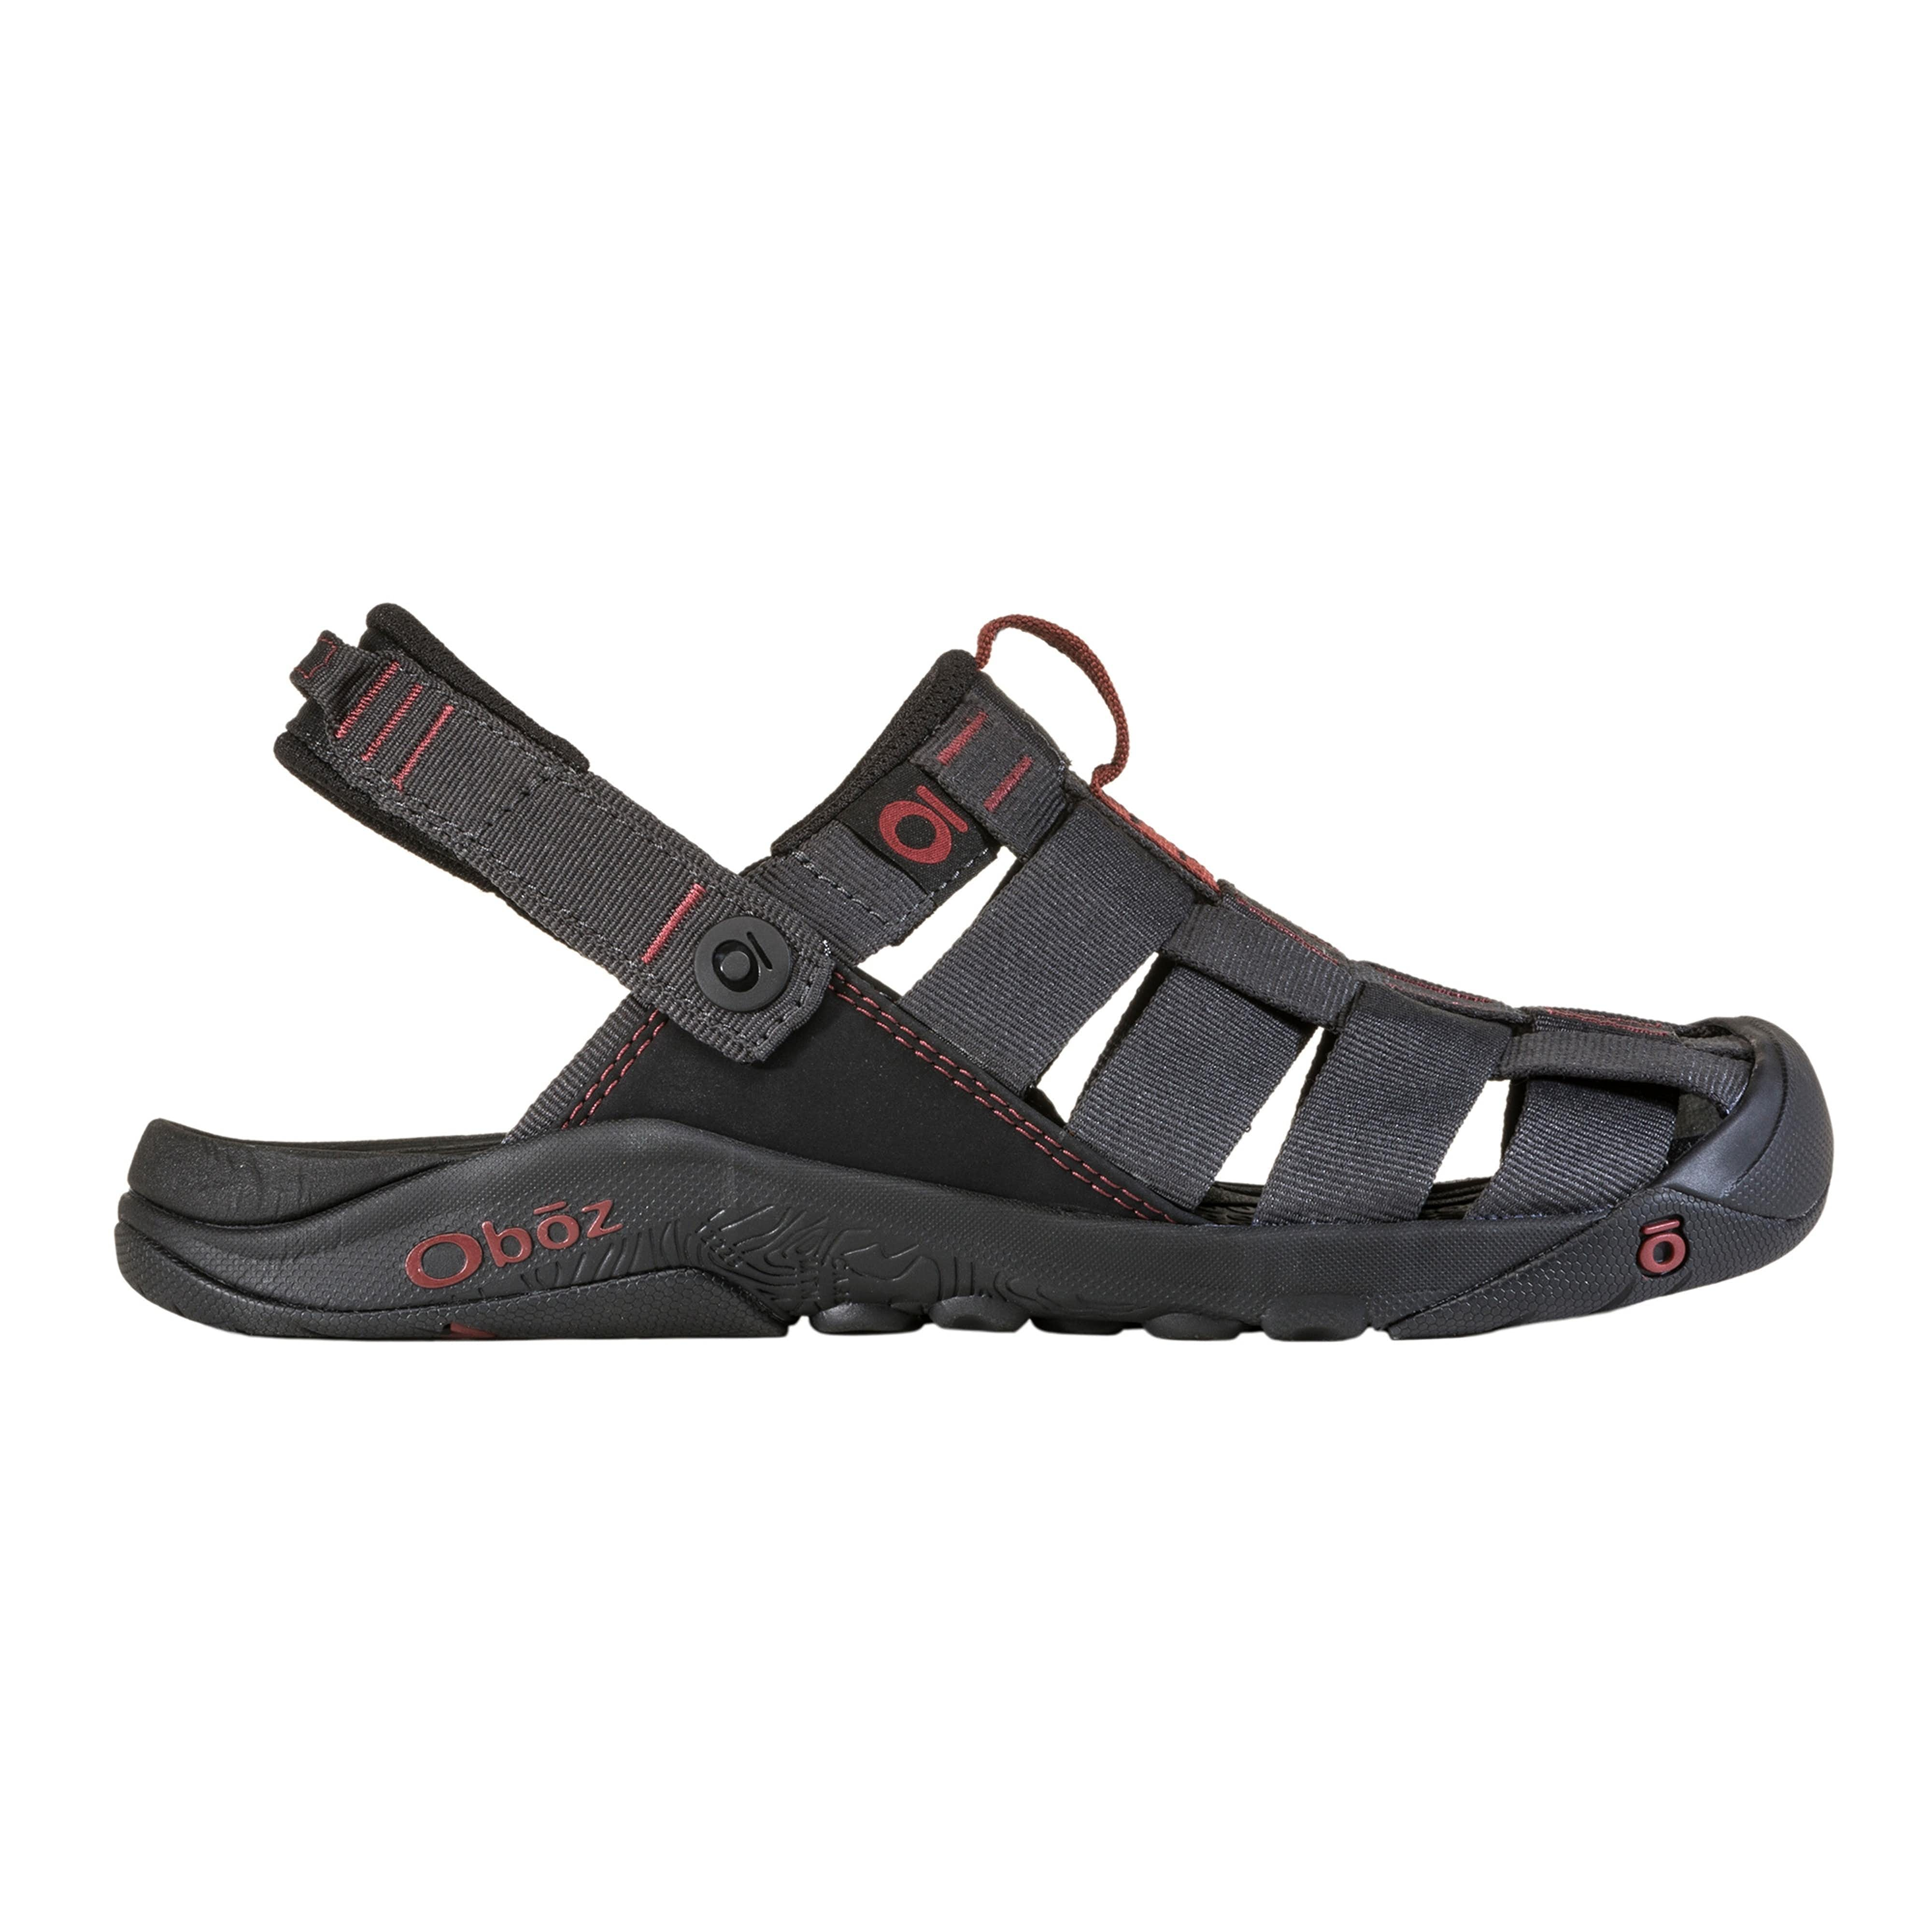 1186e6be1f75fc OBOZ Men. OBOZ Men s Campster Sandals